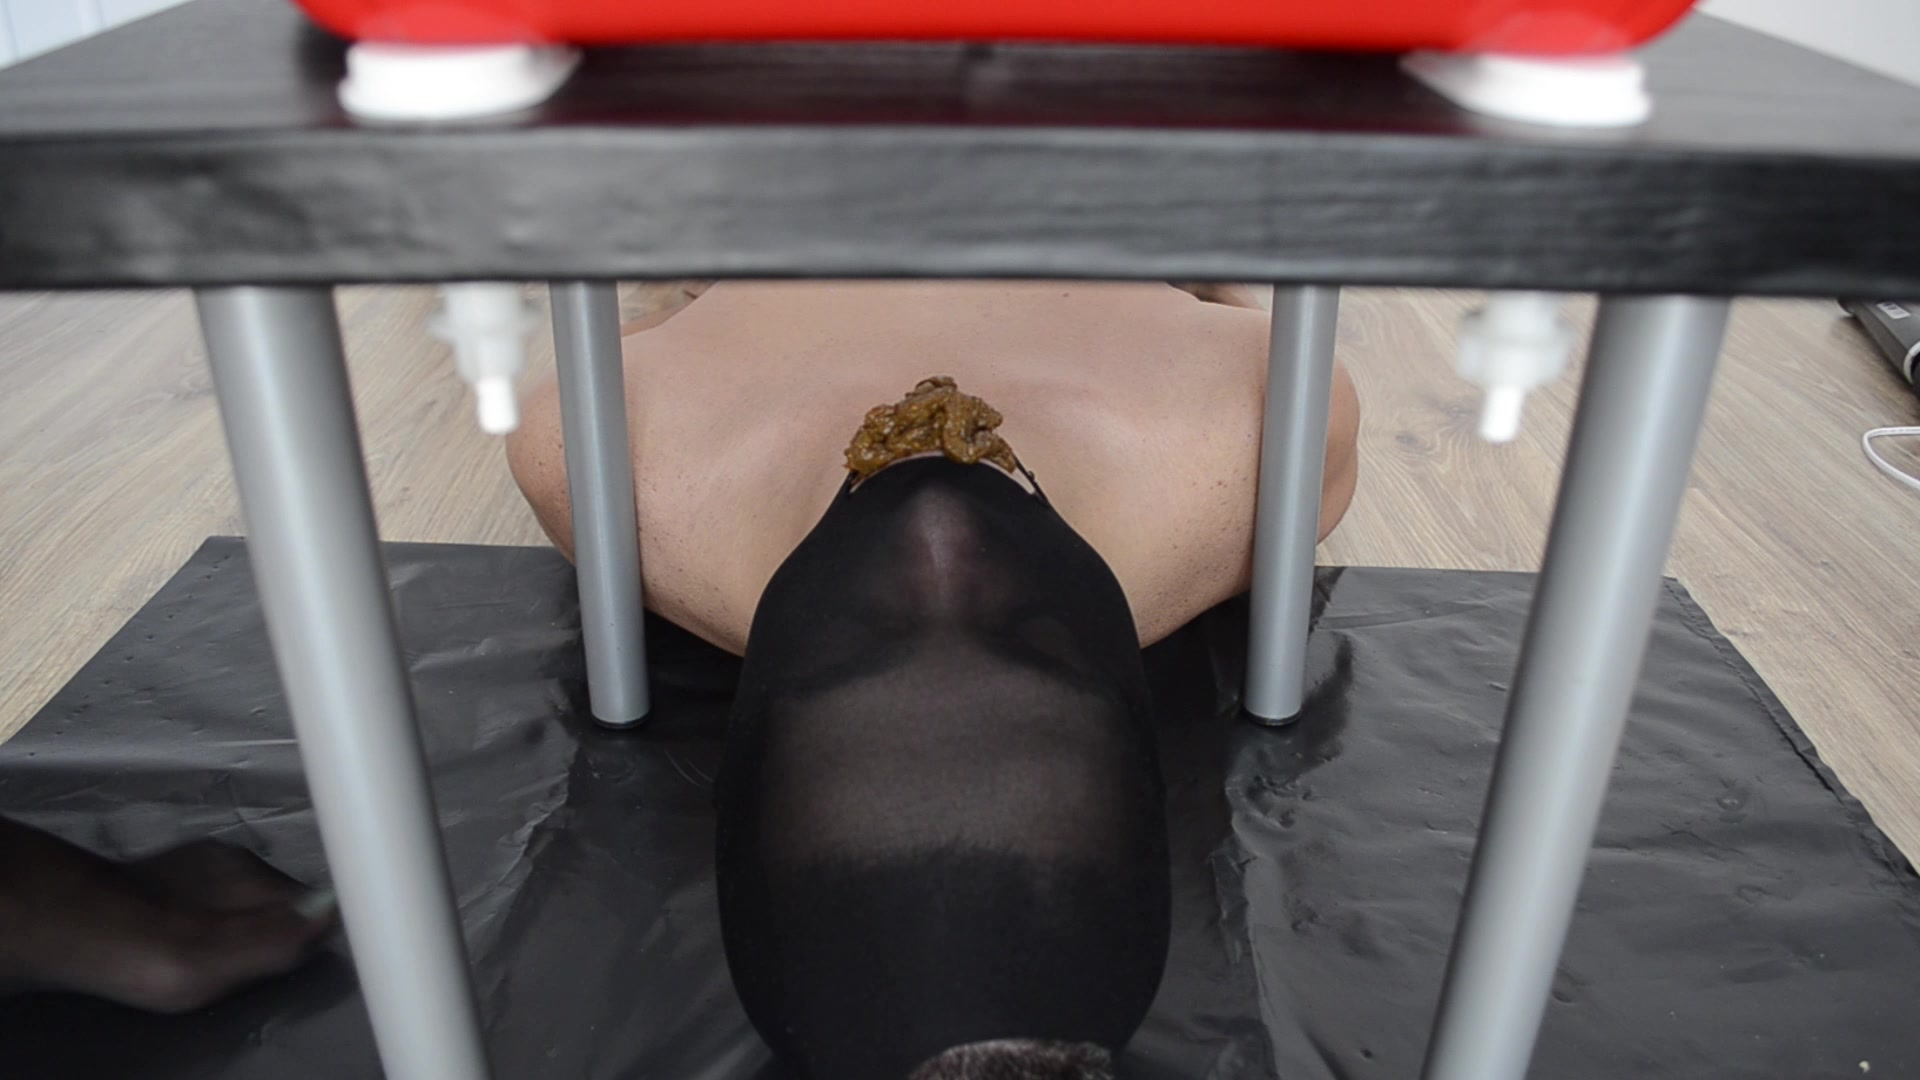 Mistress_Anna_-_Full_mouth_with_creamy_shit.00001.jpg